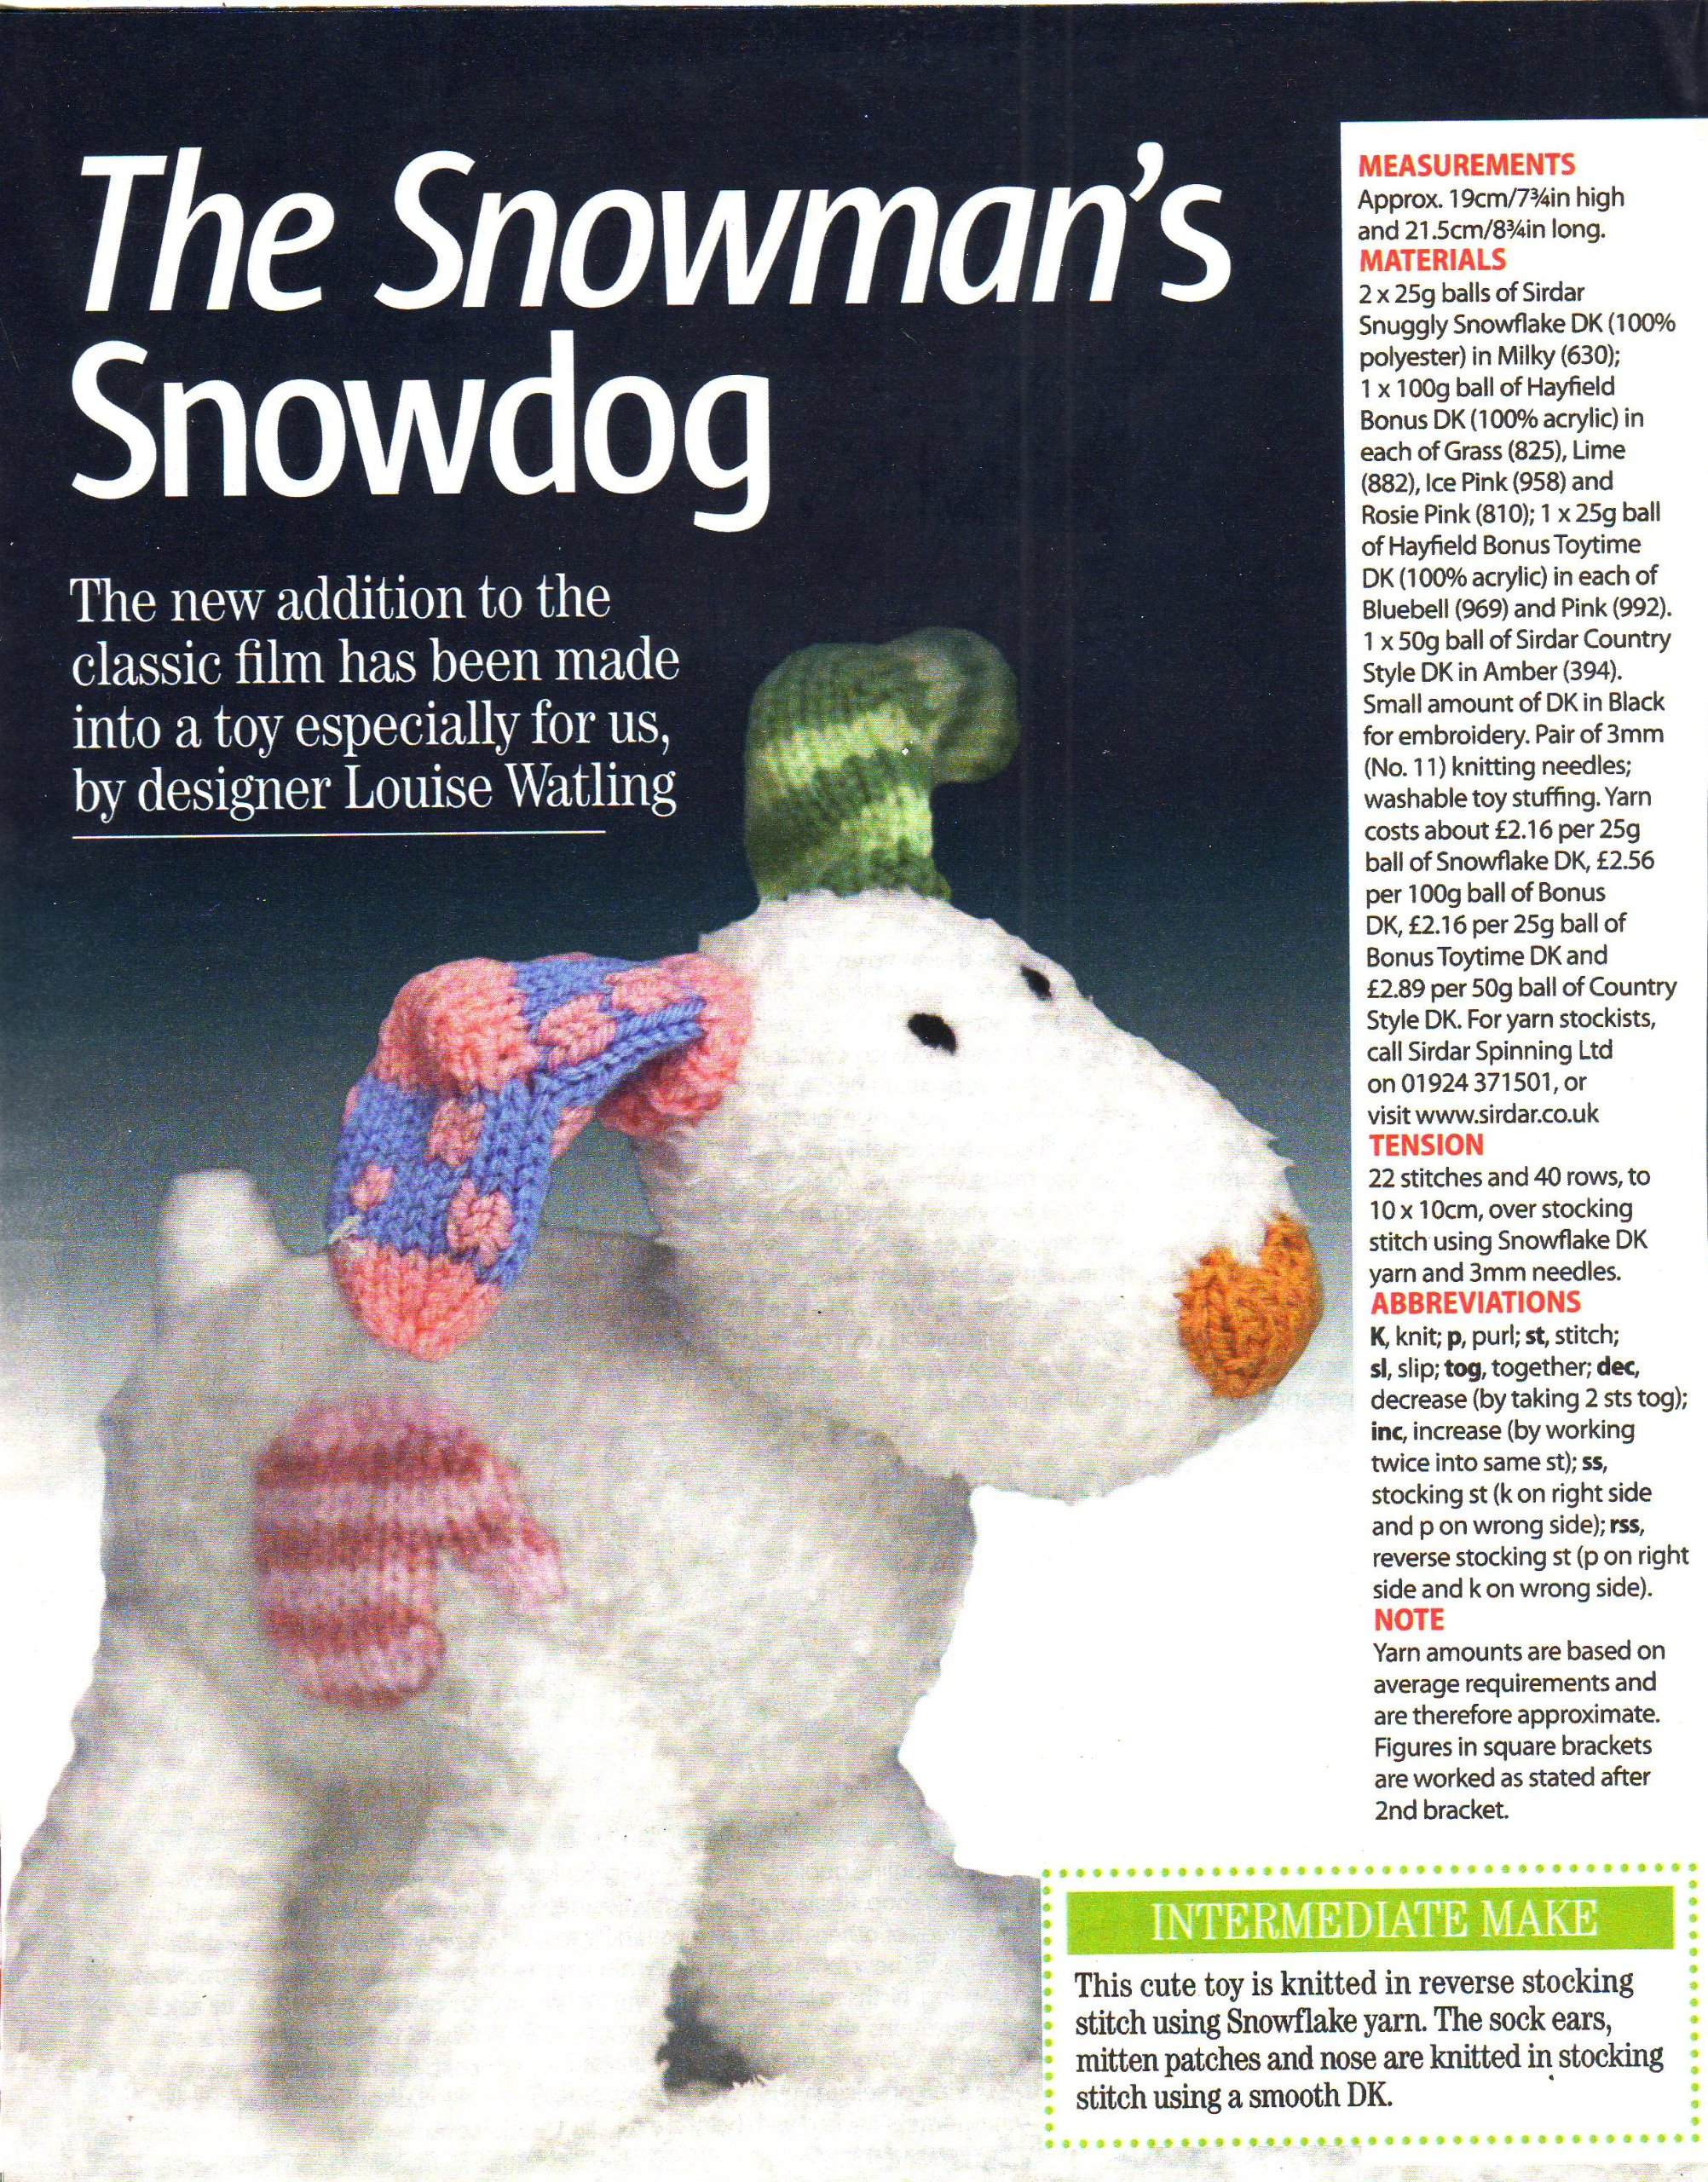 The snowmans toy snowdog knitting pattern measurements 19cm hign the snowmans toy snowdog knitting pattern measurements 19cm hign 215cm long materials sirdar snuggly snowflake dk womans weekly magazine pull out bankloansurffo Images